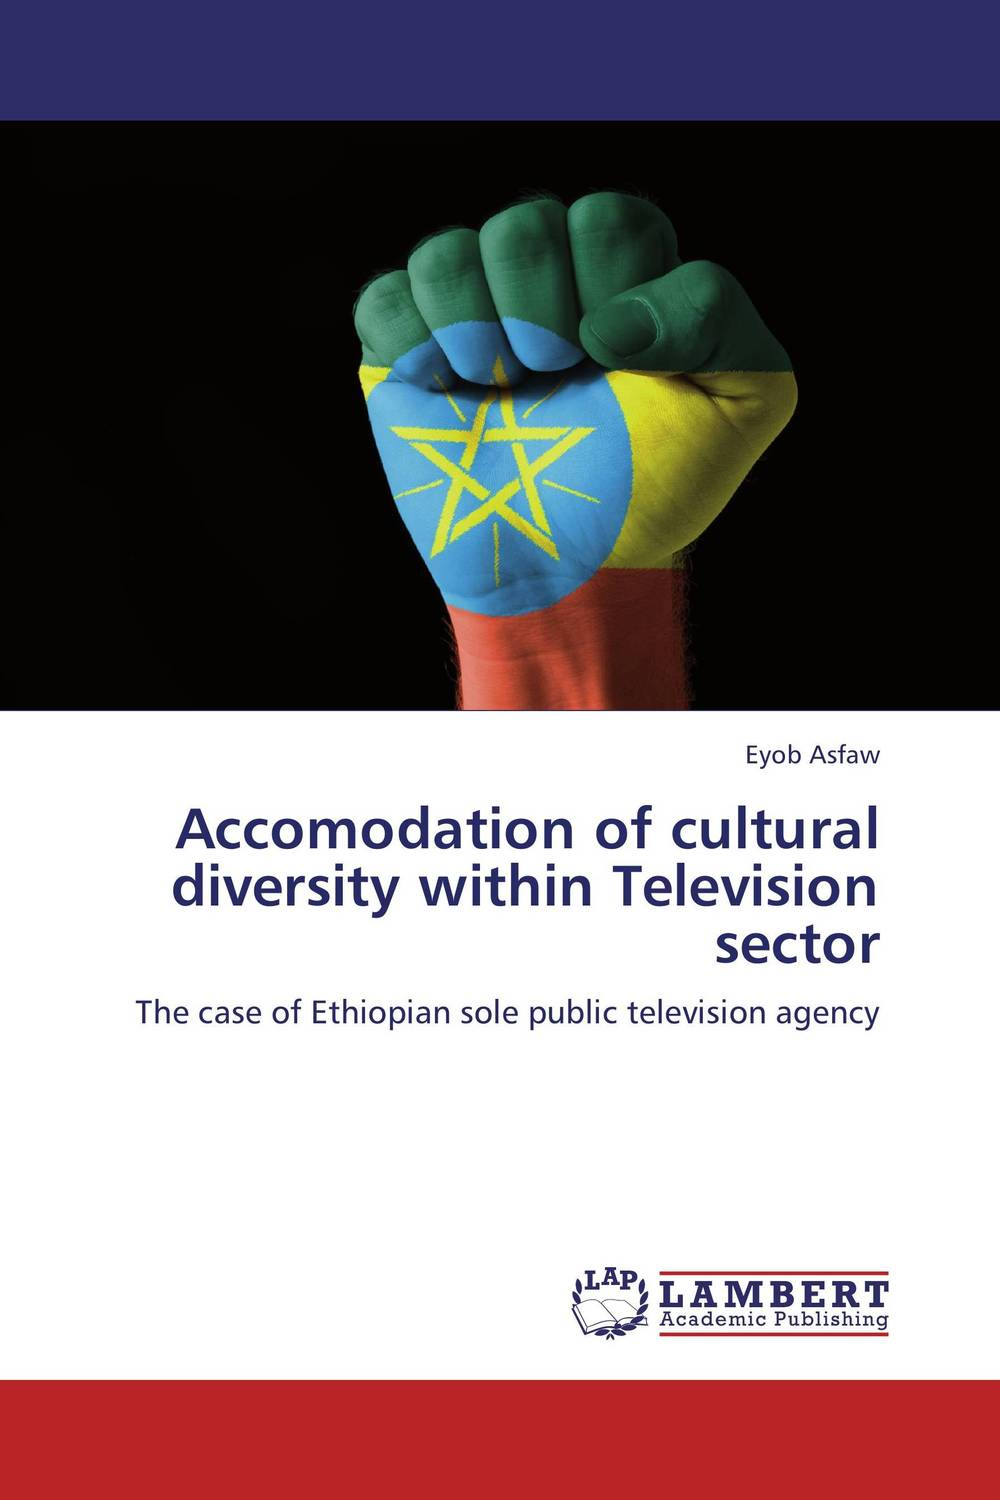 Accomodation of cultural diversity within Television sector rethinking multicultaralism – cultural diversity